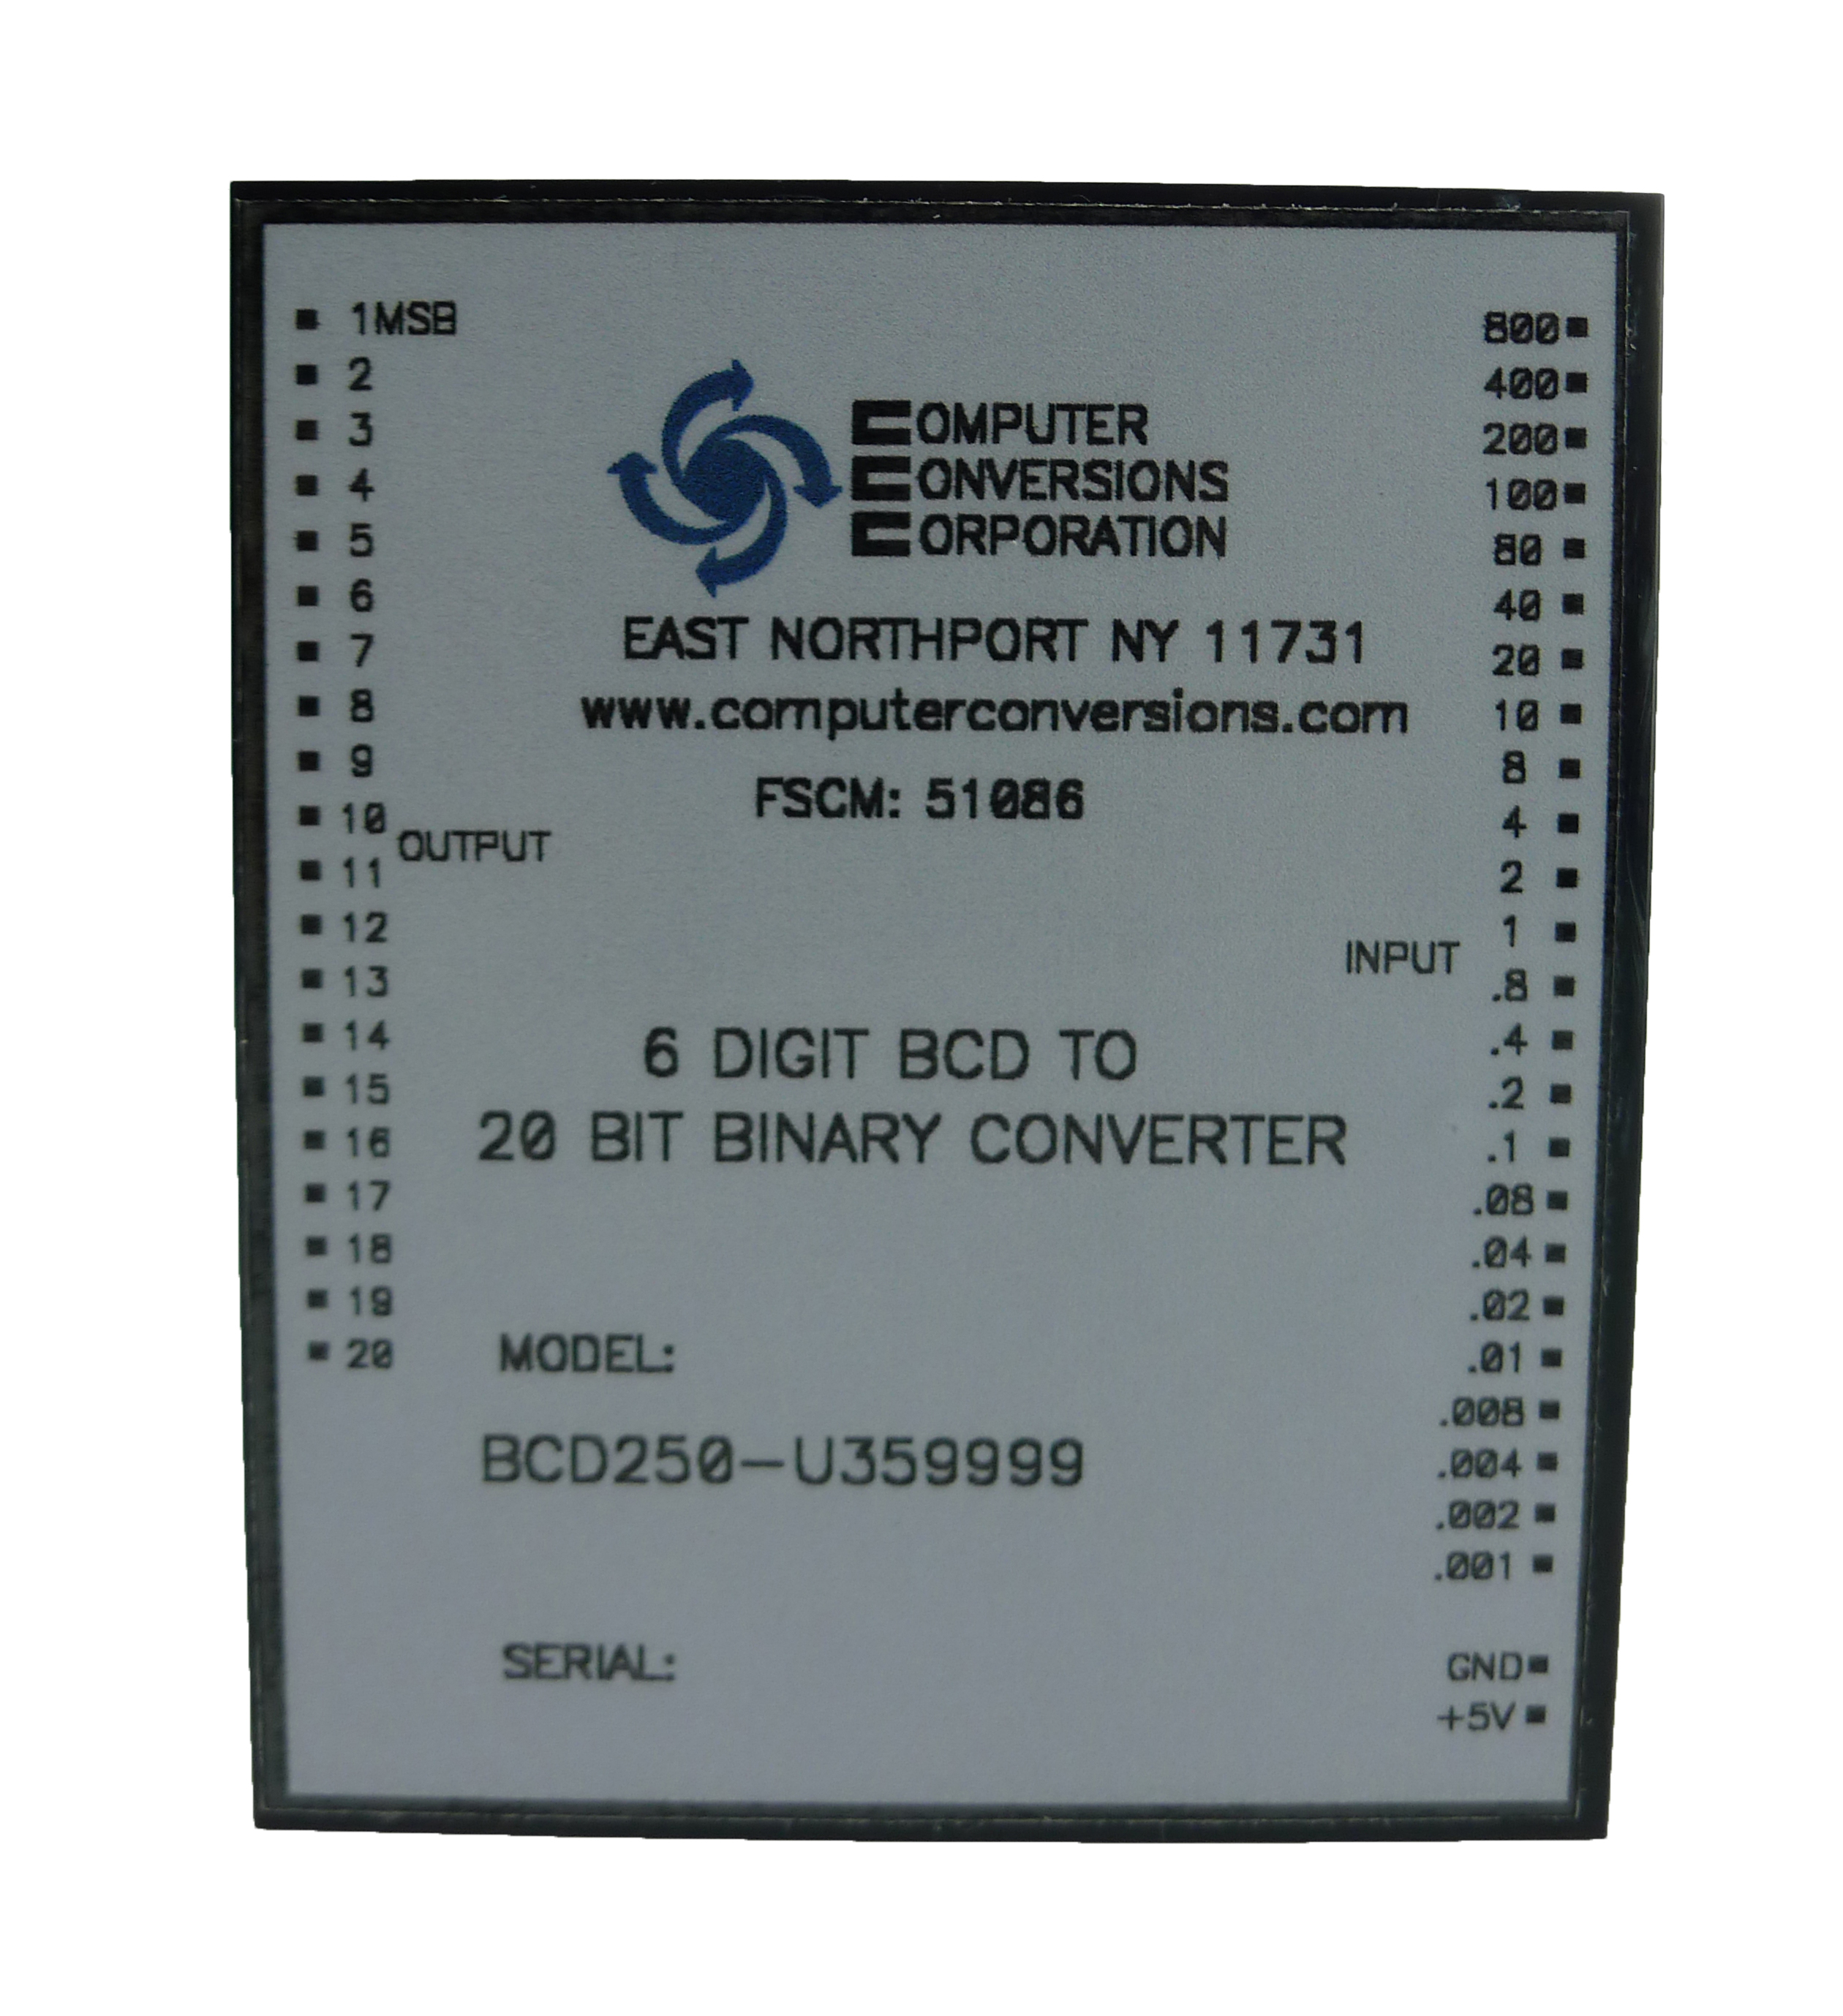 Bcd Full Form In Computer Expert Event Bit Binary To Converter Circuit 8 2 Bcdgif Converters